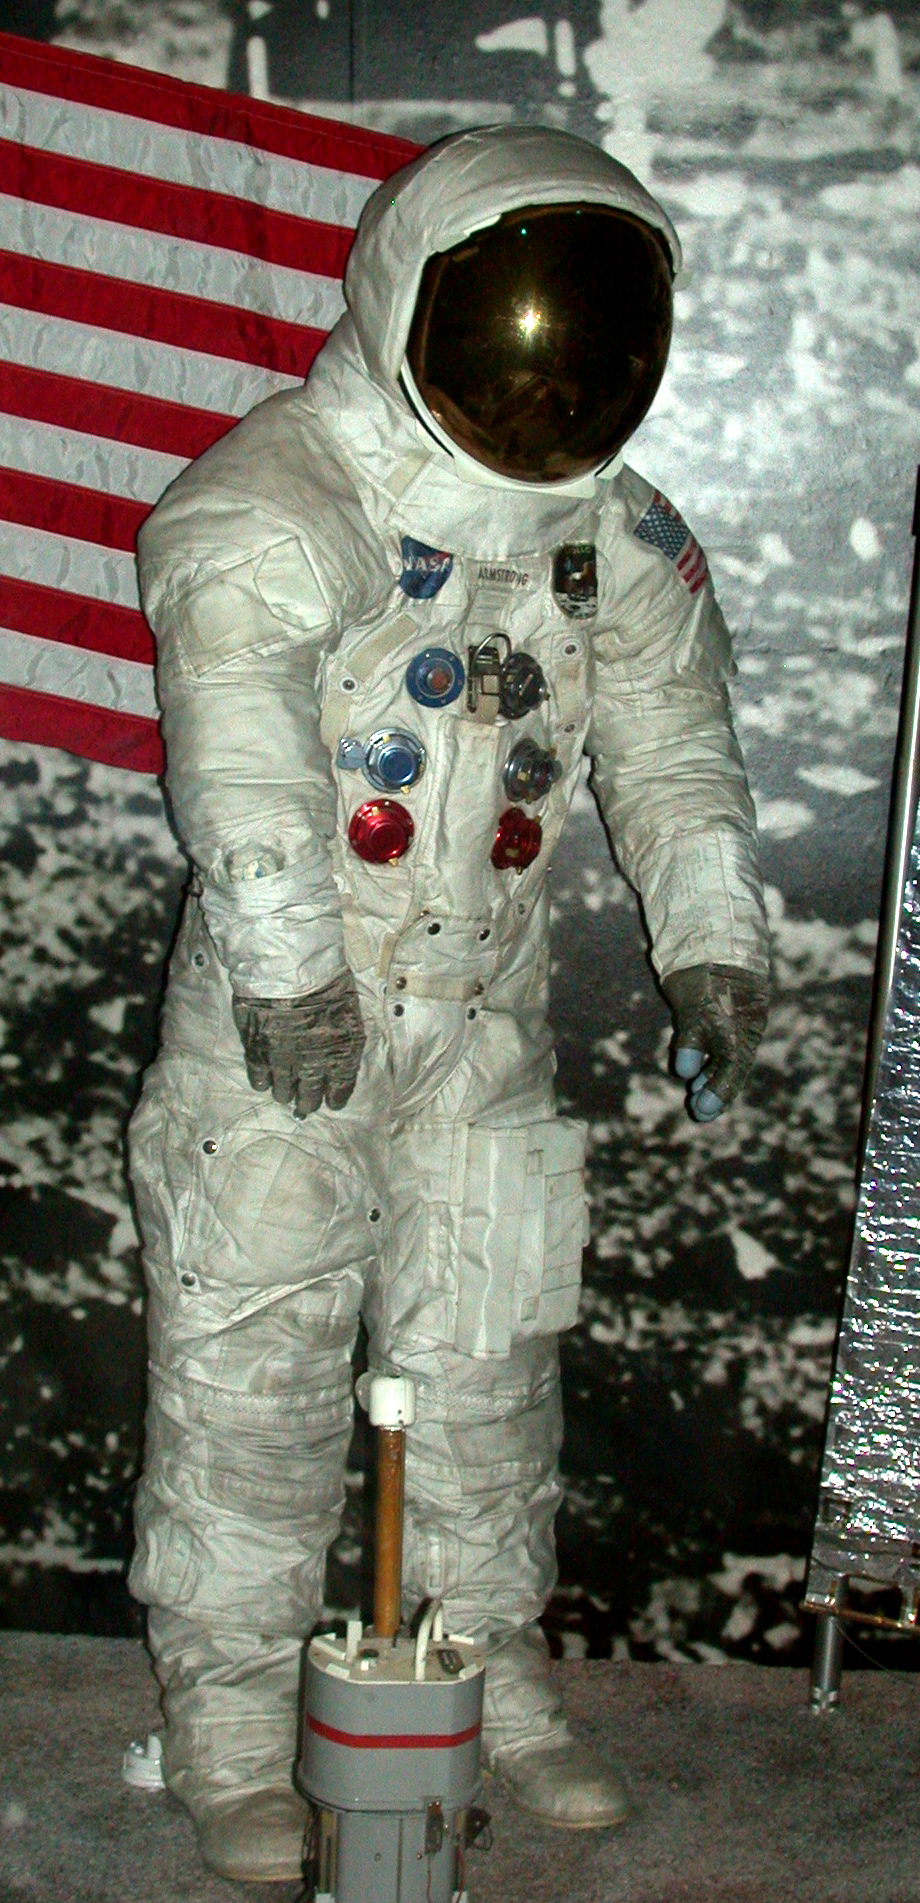 neil armstrong full suite - photo #13